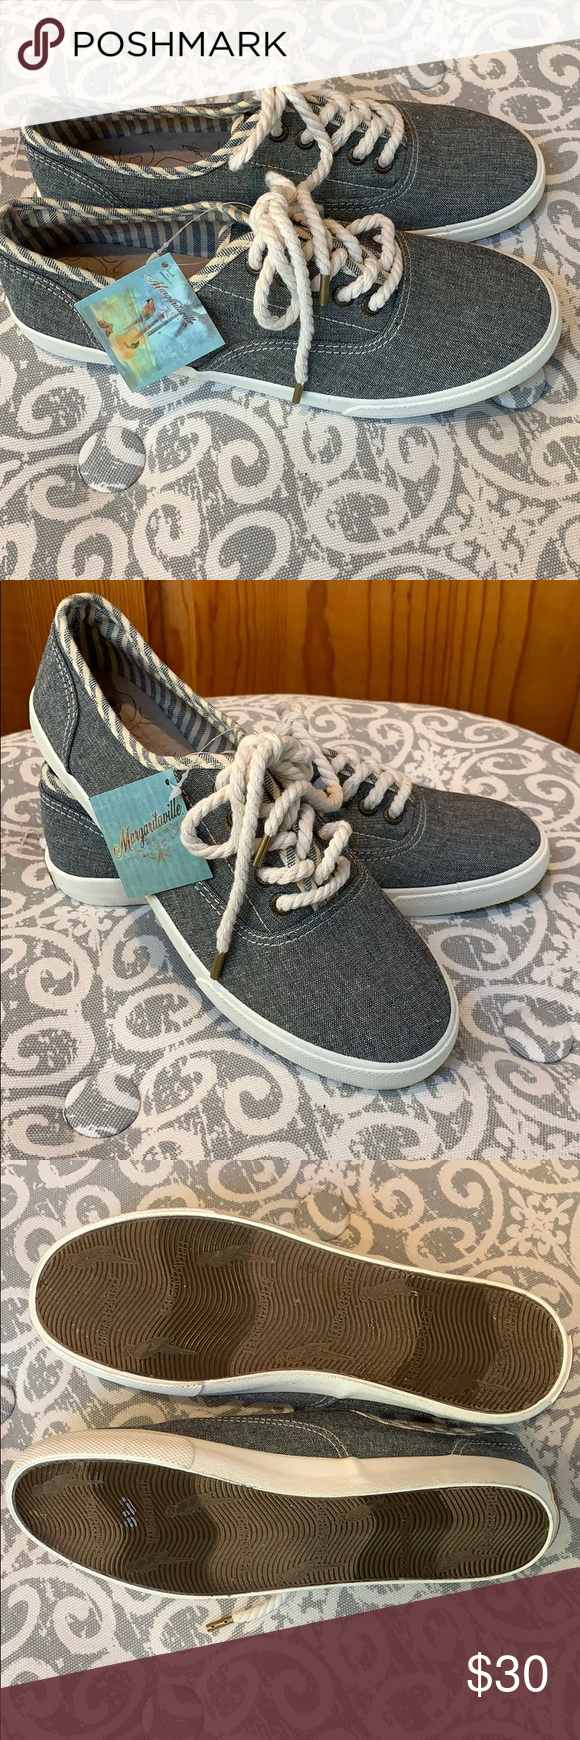 Margaritaville canvas shoes in 2020